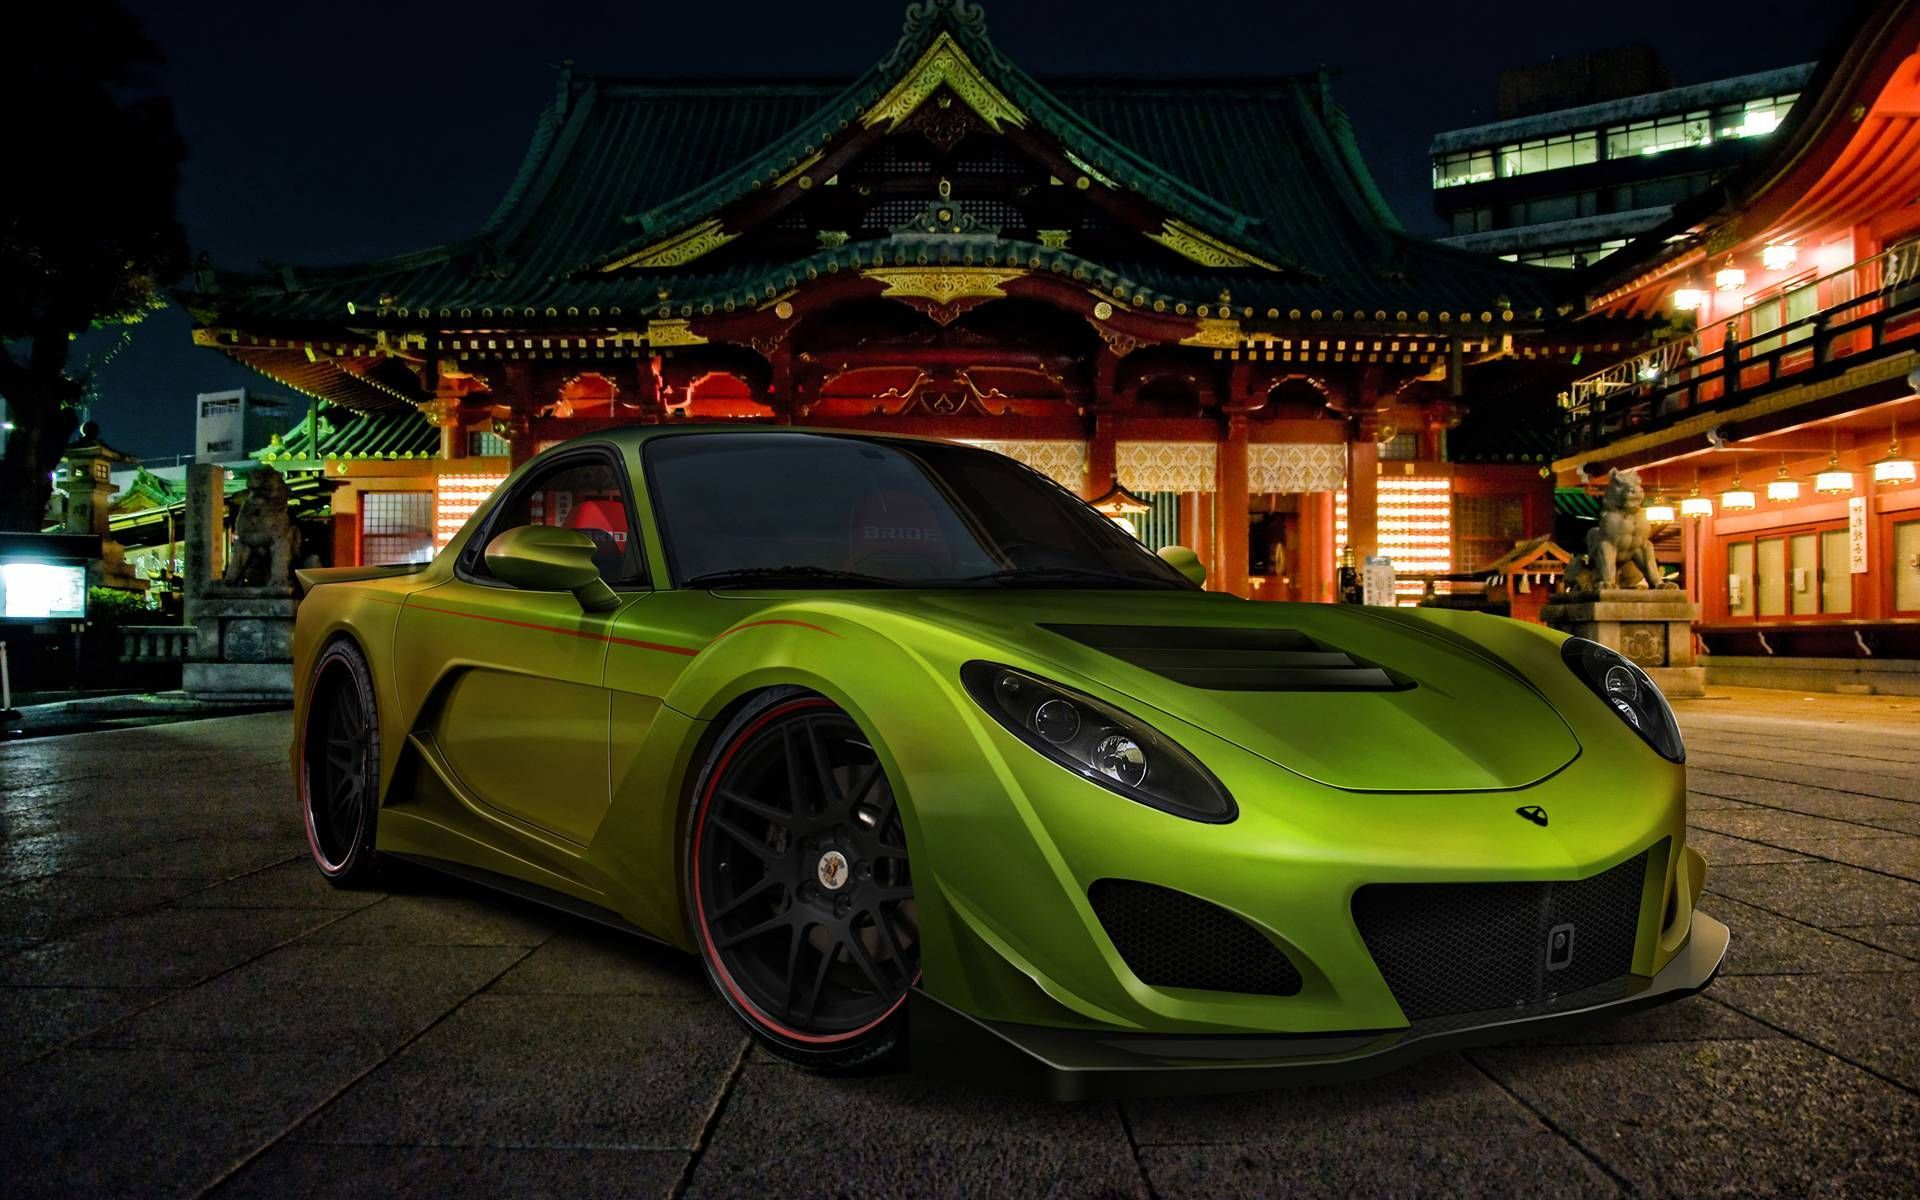 Cool Car Backgrounds Wallpapers Wallpaper Cave Cars Fastestcars